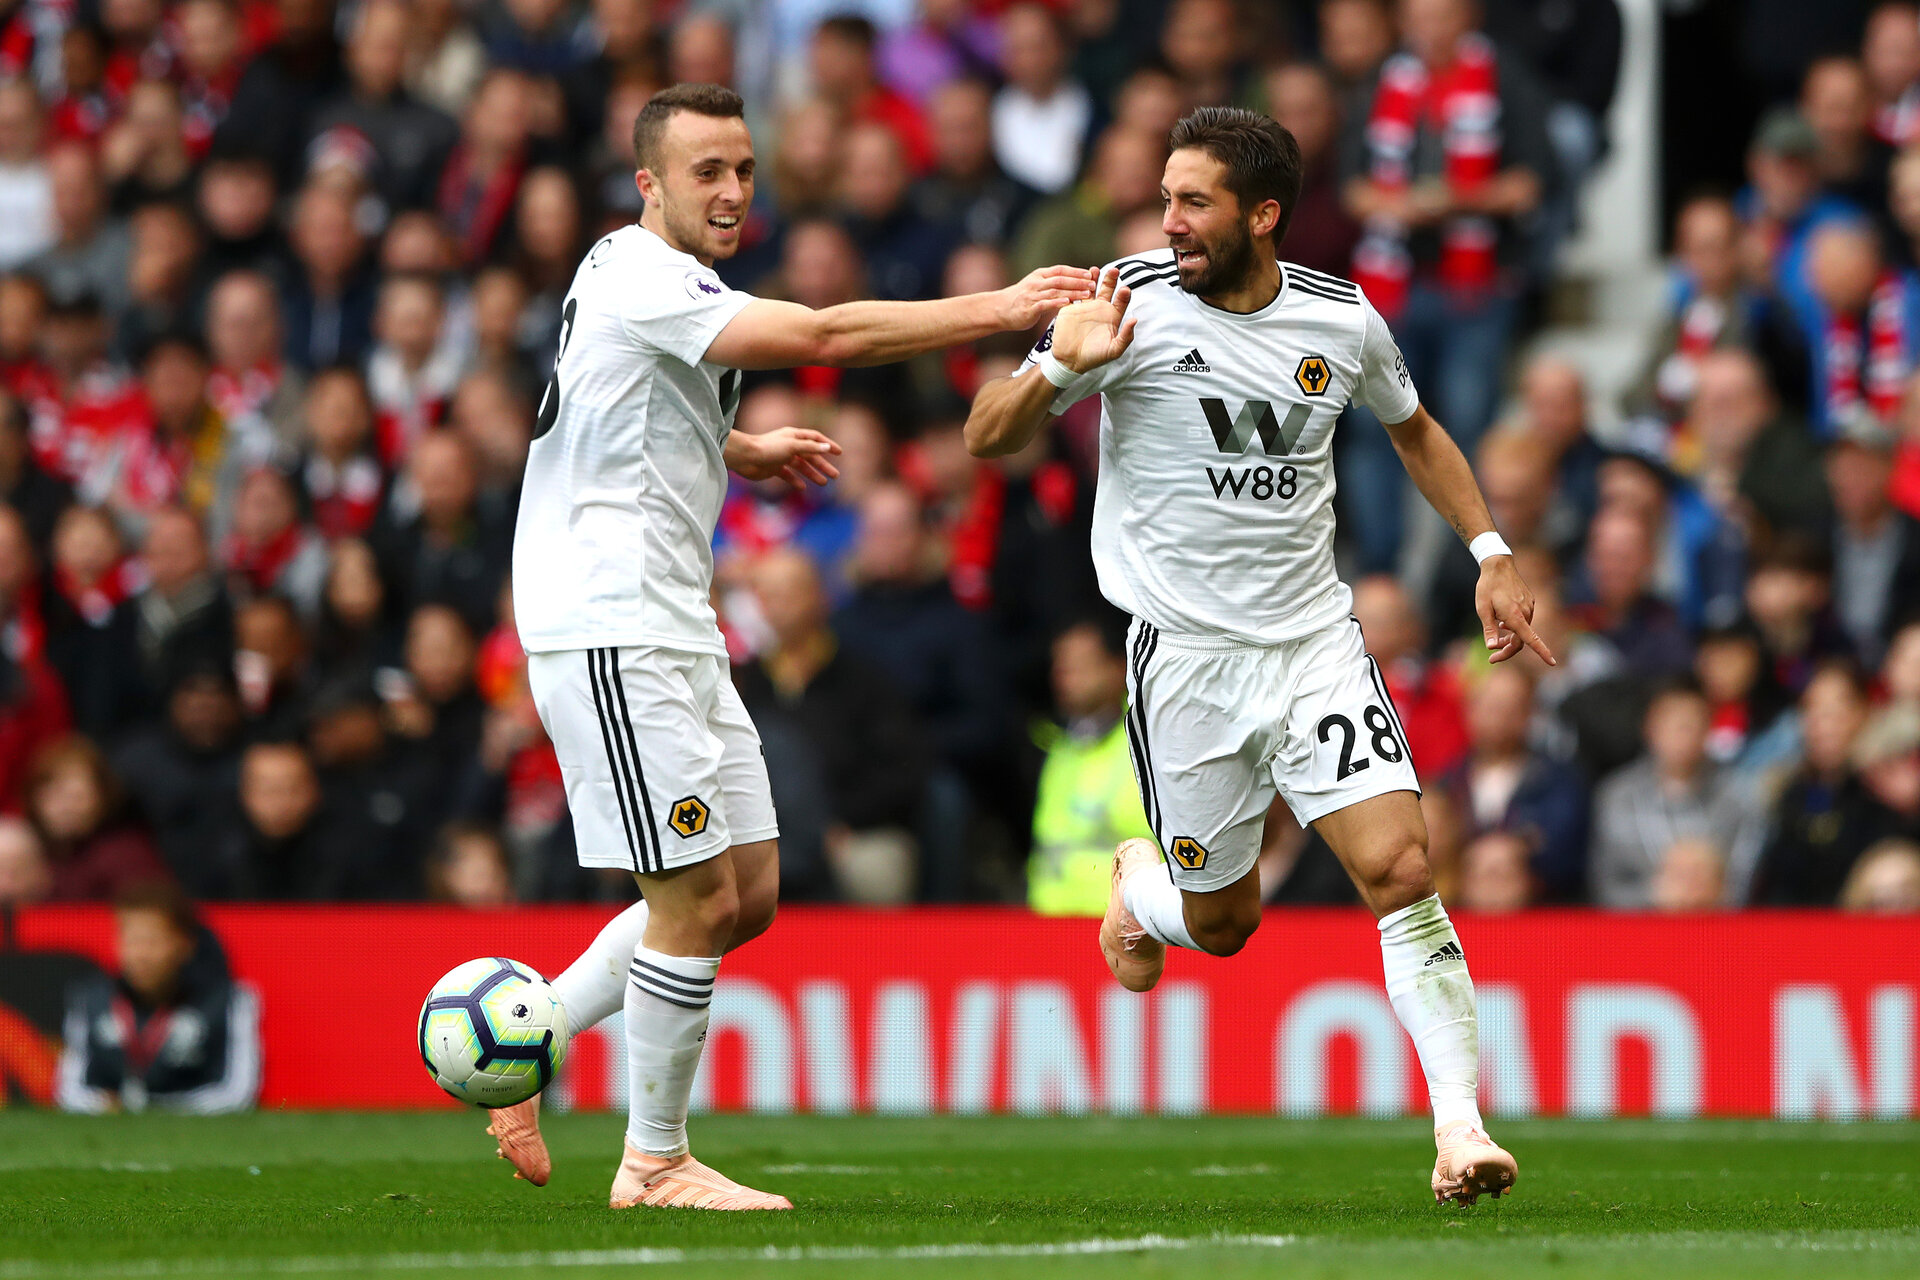 MANCHESTER, ENGLAND - SEPTEMBER 22:  Joao Moutinho of Wolverhampton Wanderers celebrates with teammate Diogo Jota after scoring his team's first goal during the Premier League match between Manchester United and Wolverhampton Wanderers at Old Trafford on September 22, 2018 in Manchester, United Kingdom.  (Photo by Matthew Lewis/Getty Images)